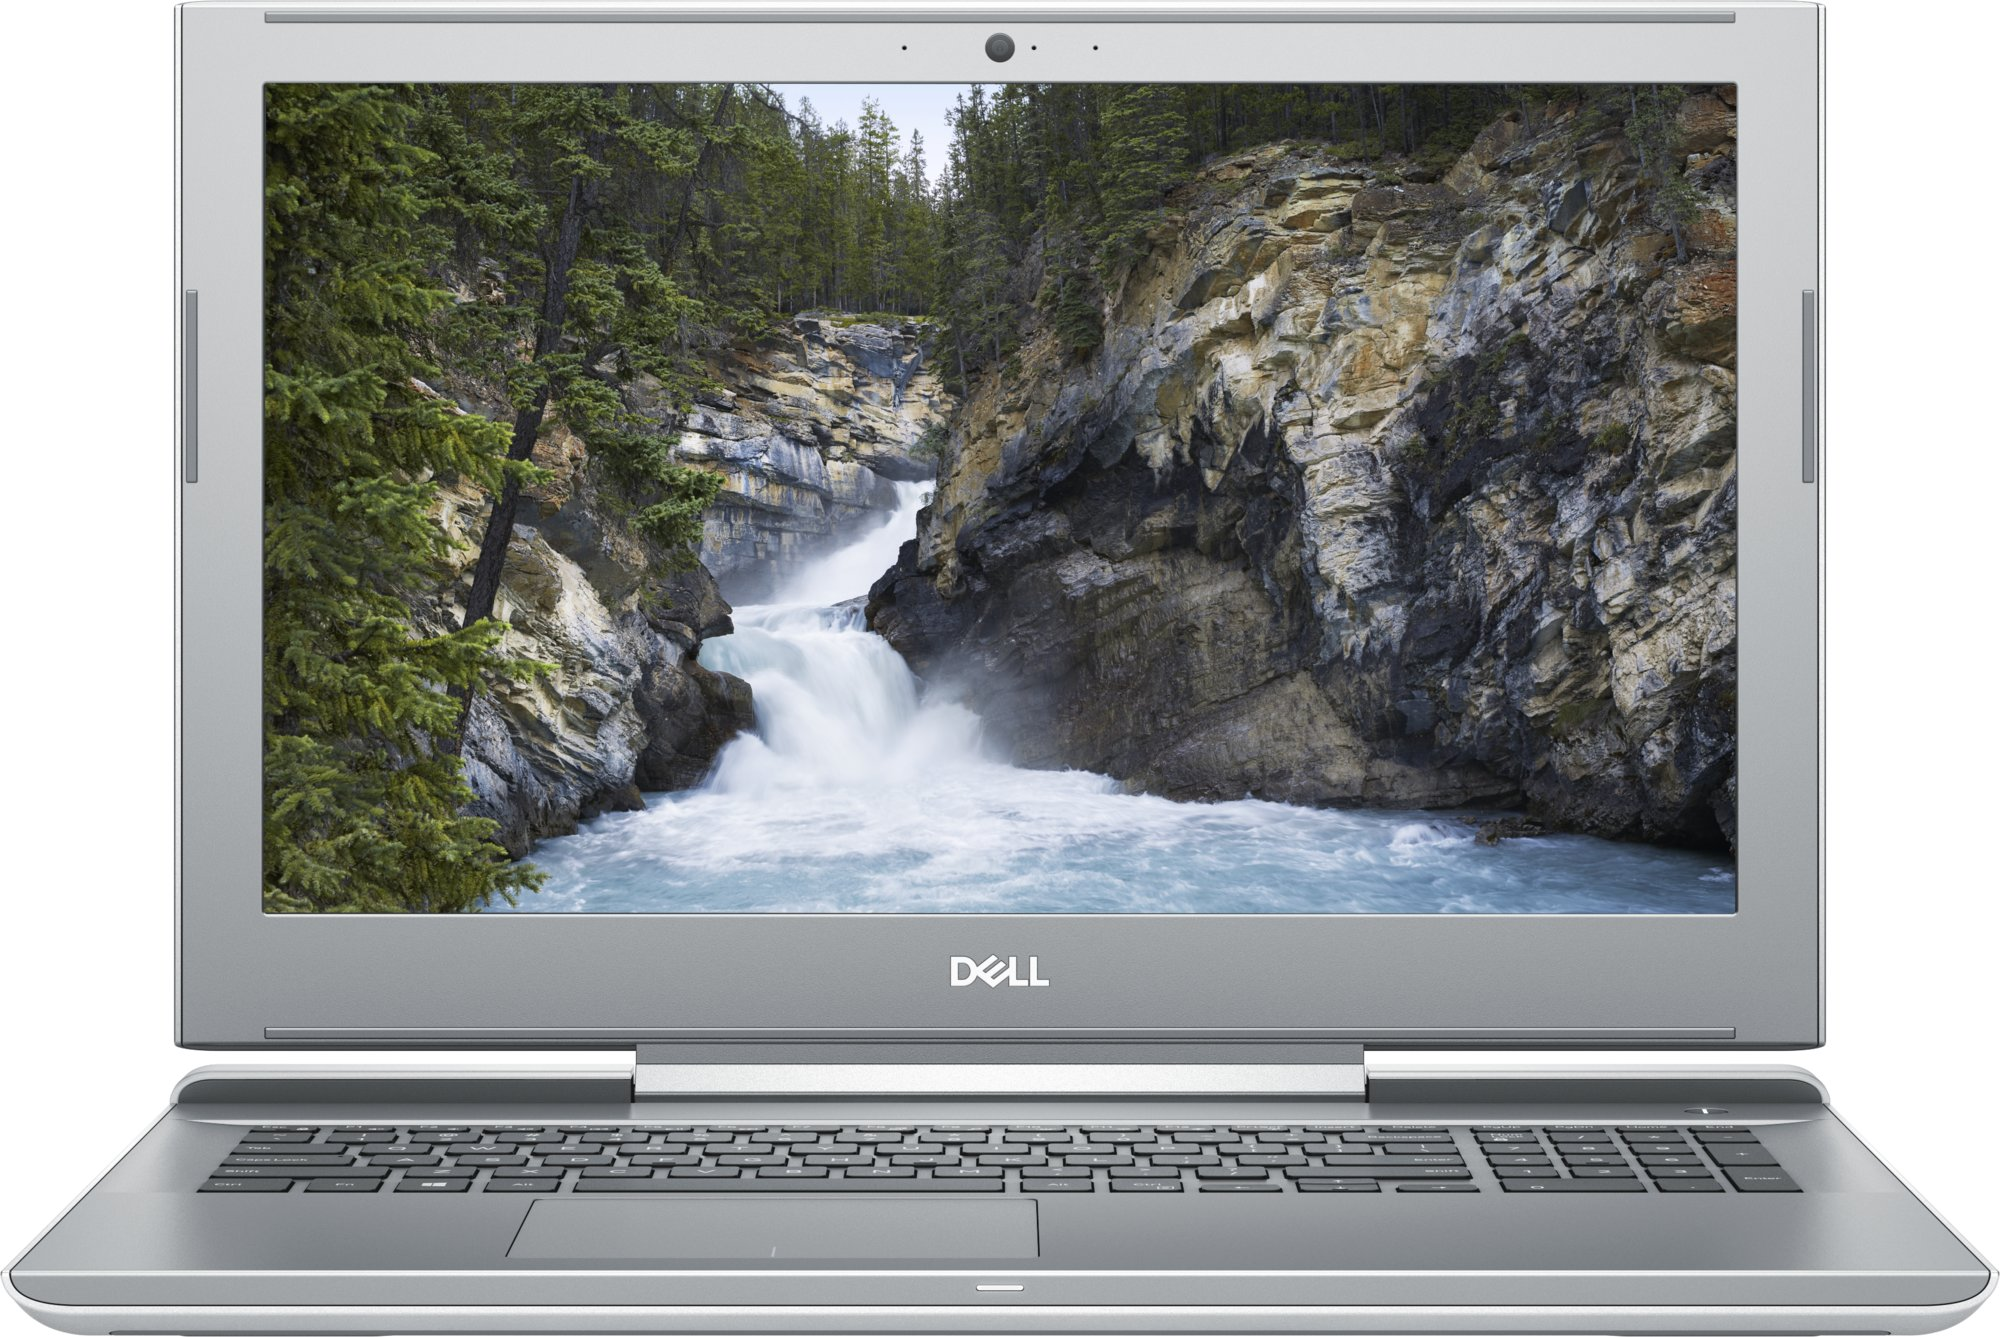 Dell Vostro 15 7580 review – a business class all-rounder